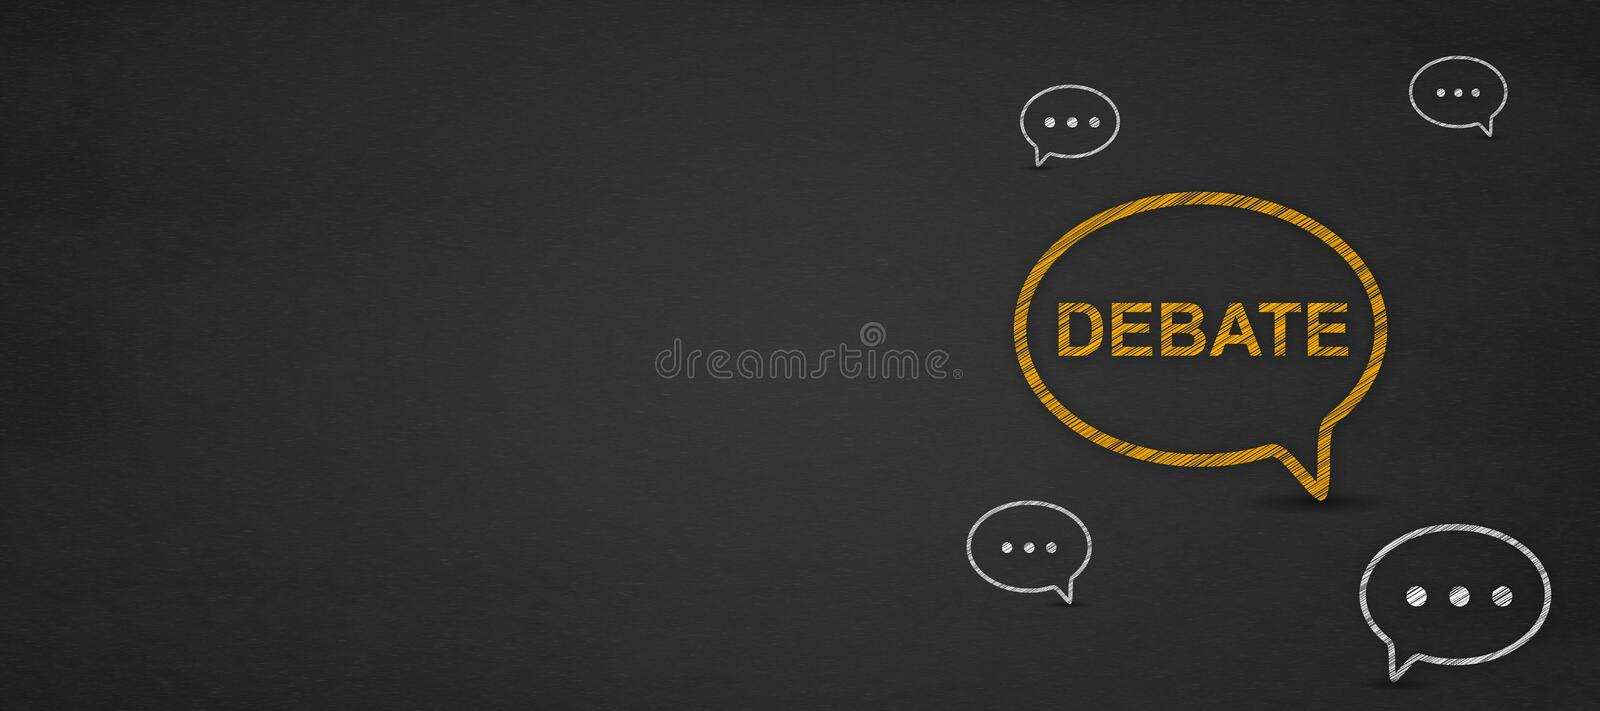 Debate word in speech bubble on a blackboard. Talking about political opinions. communication and education concept royalty free stock image